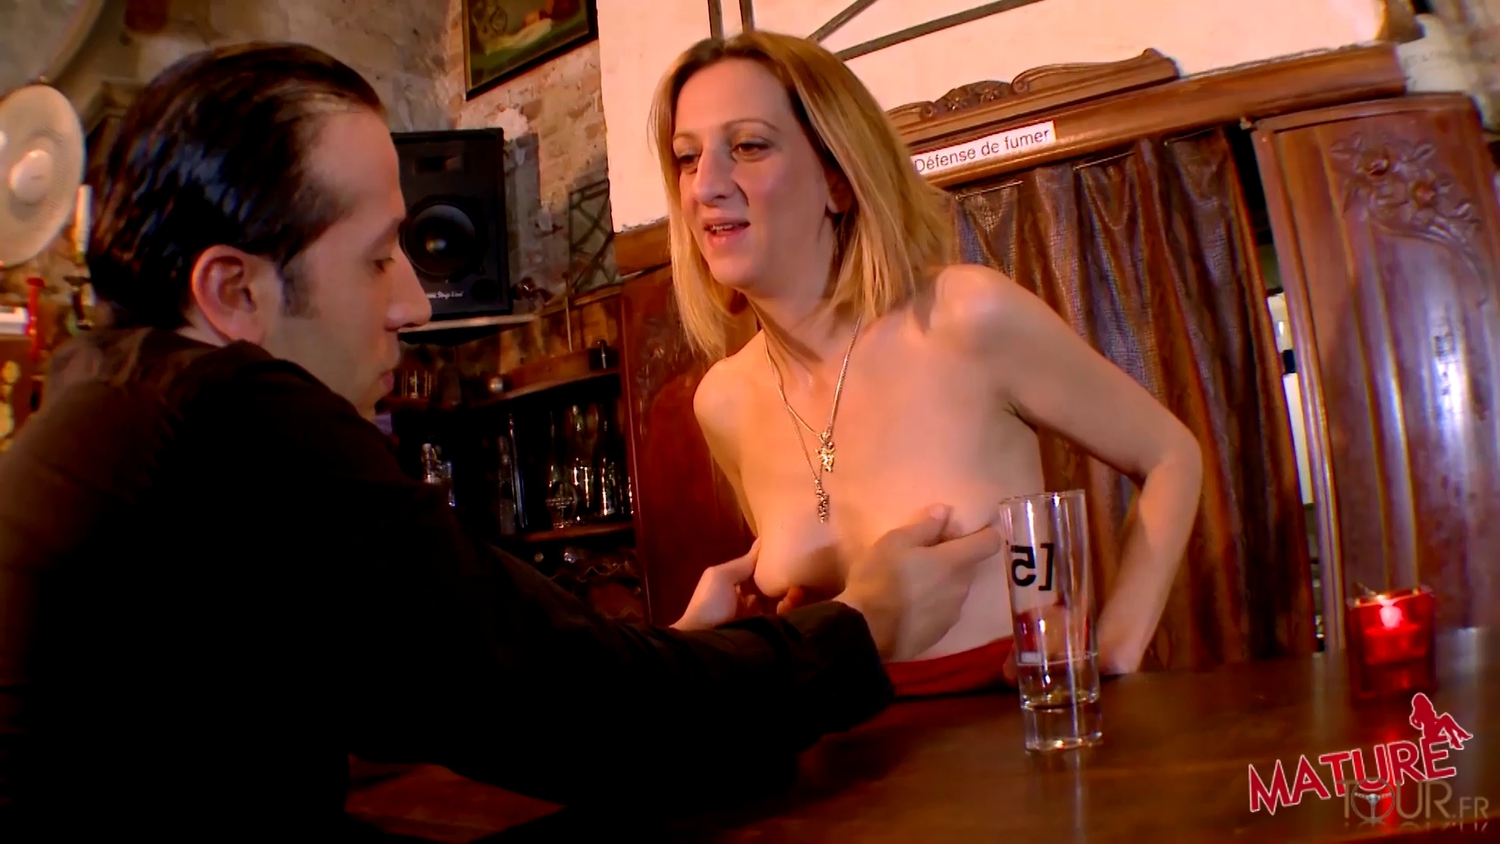 Busty mature bartender gets some action in HD throat like sand paper and burns